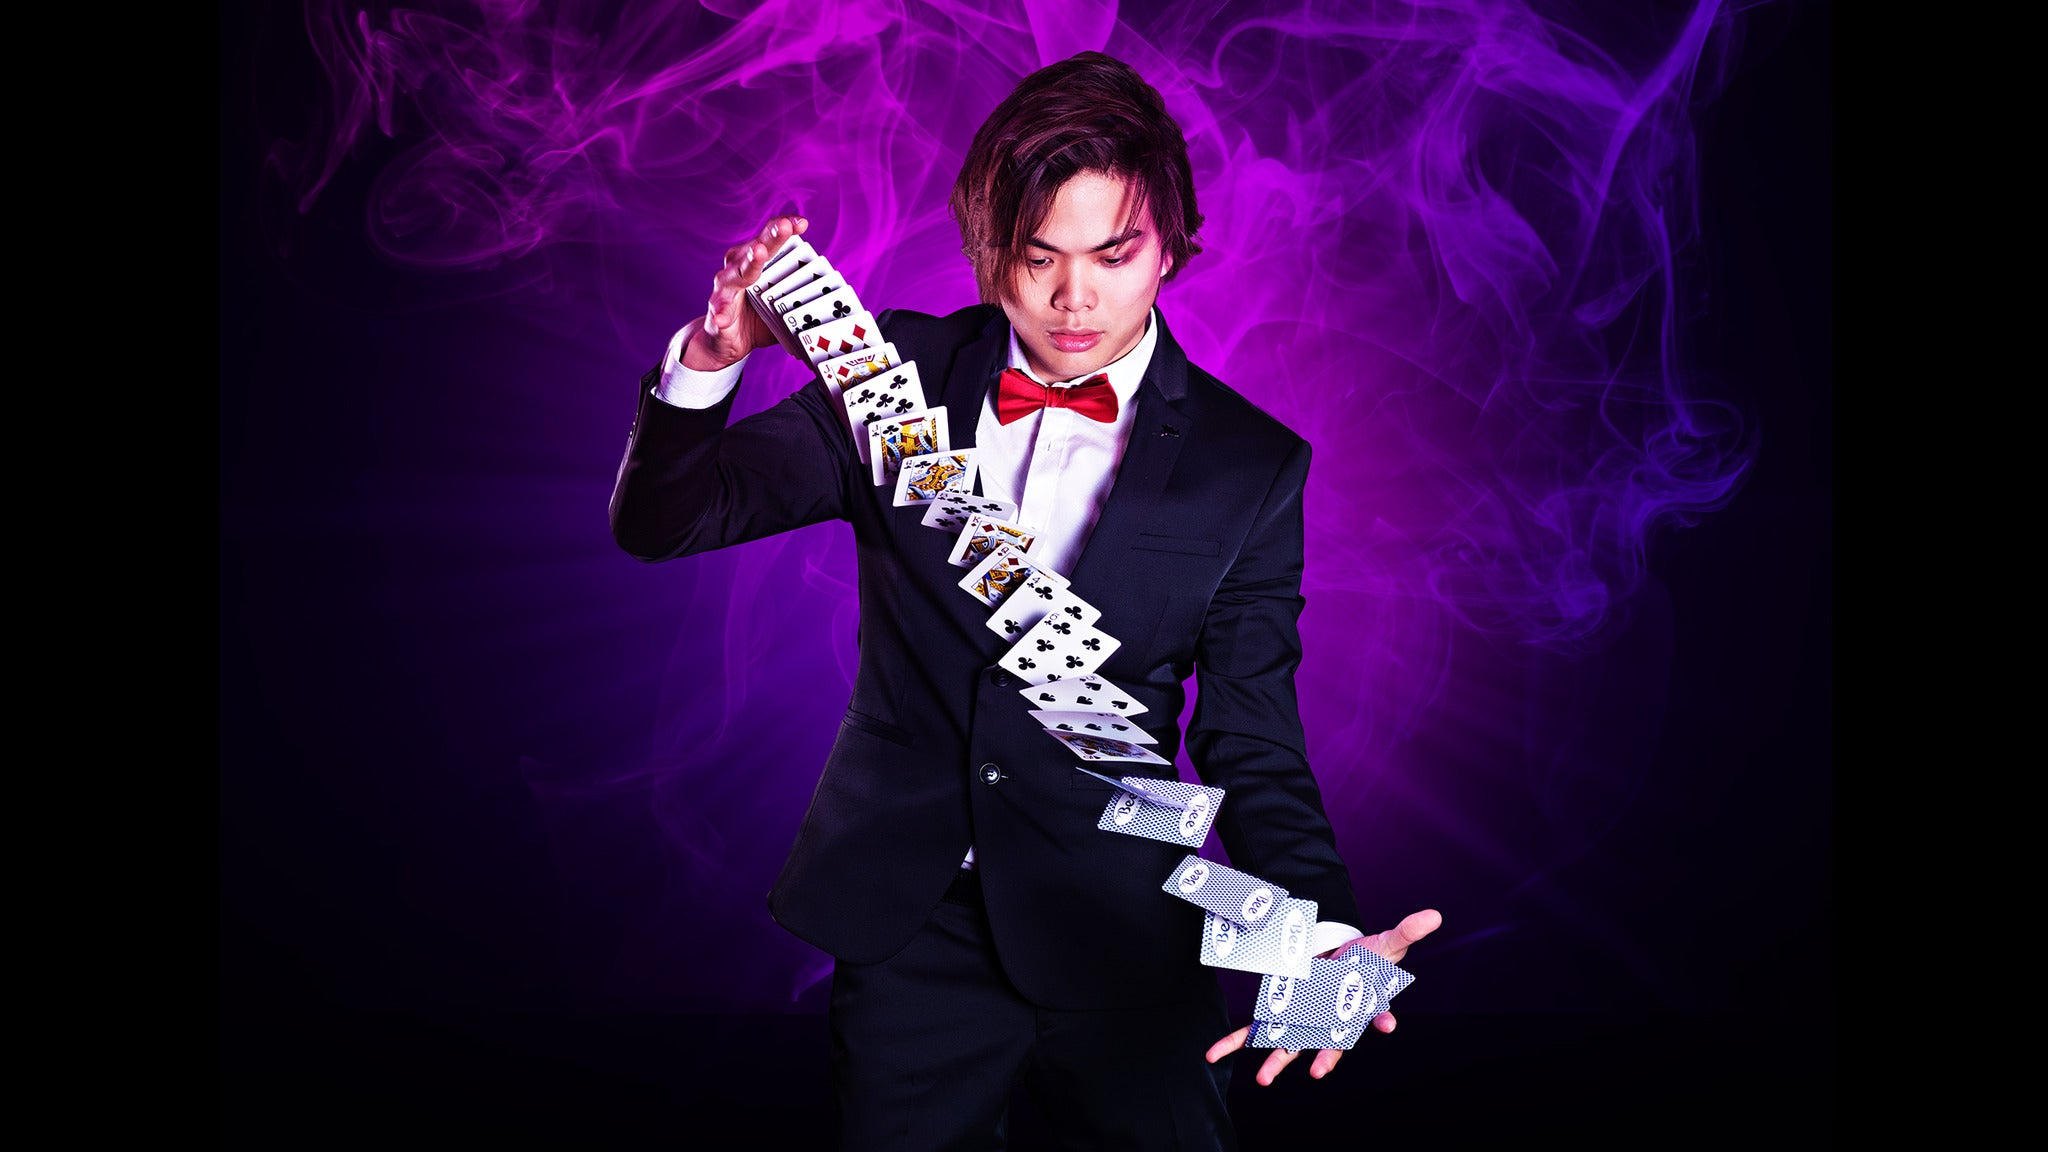 Shin Lim at Borgata Casino Event Center - Atlantic City, NJ 08401